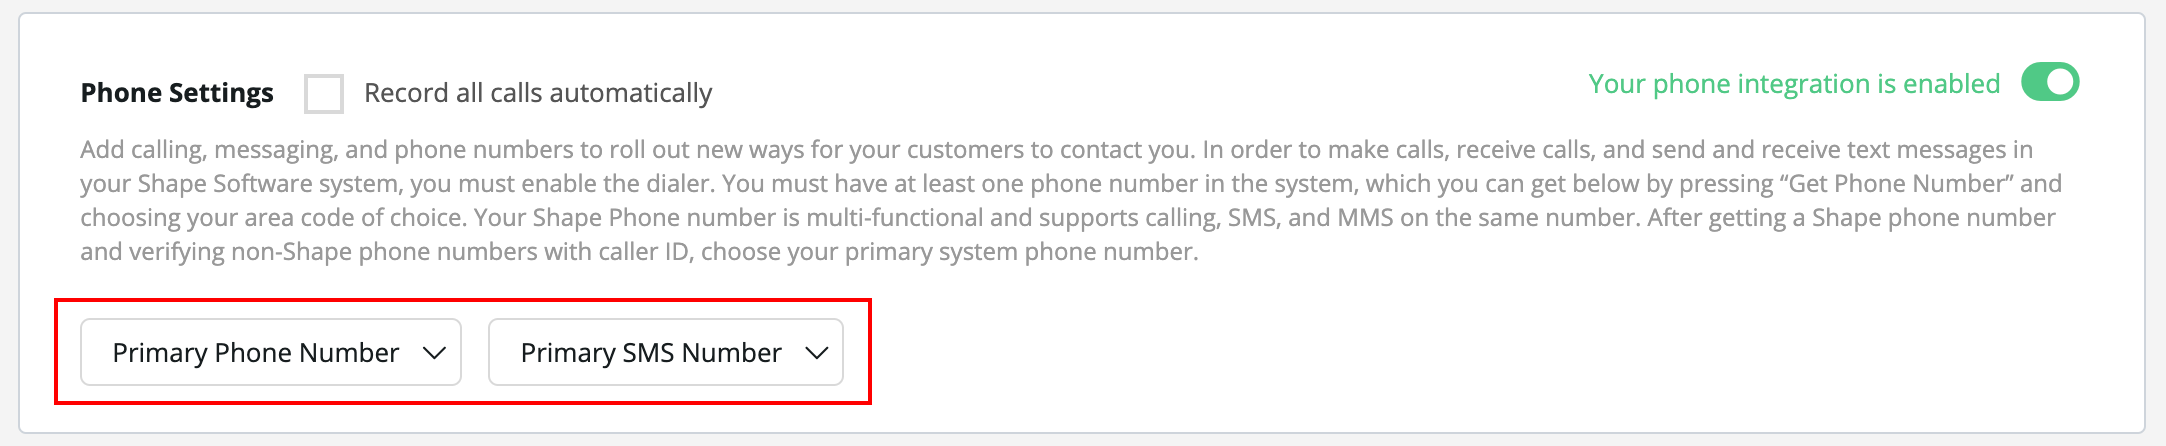 """Primary Phone Numbers:  After purchasing Shape numbers and verifying caller ID numbers, choose your primary Calling Phone number and Primary SMS fallback numbers. This will be the fallback number if a user doesn't choose a Caller ID number or a template doesn't have a """"From"""" number selected."""